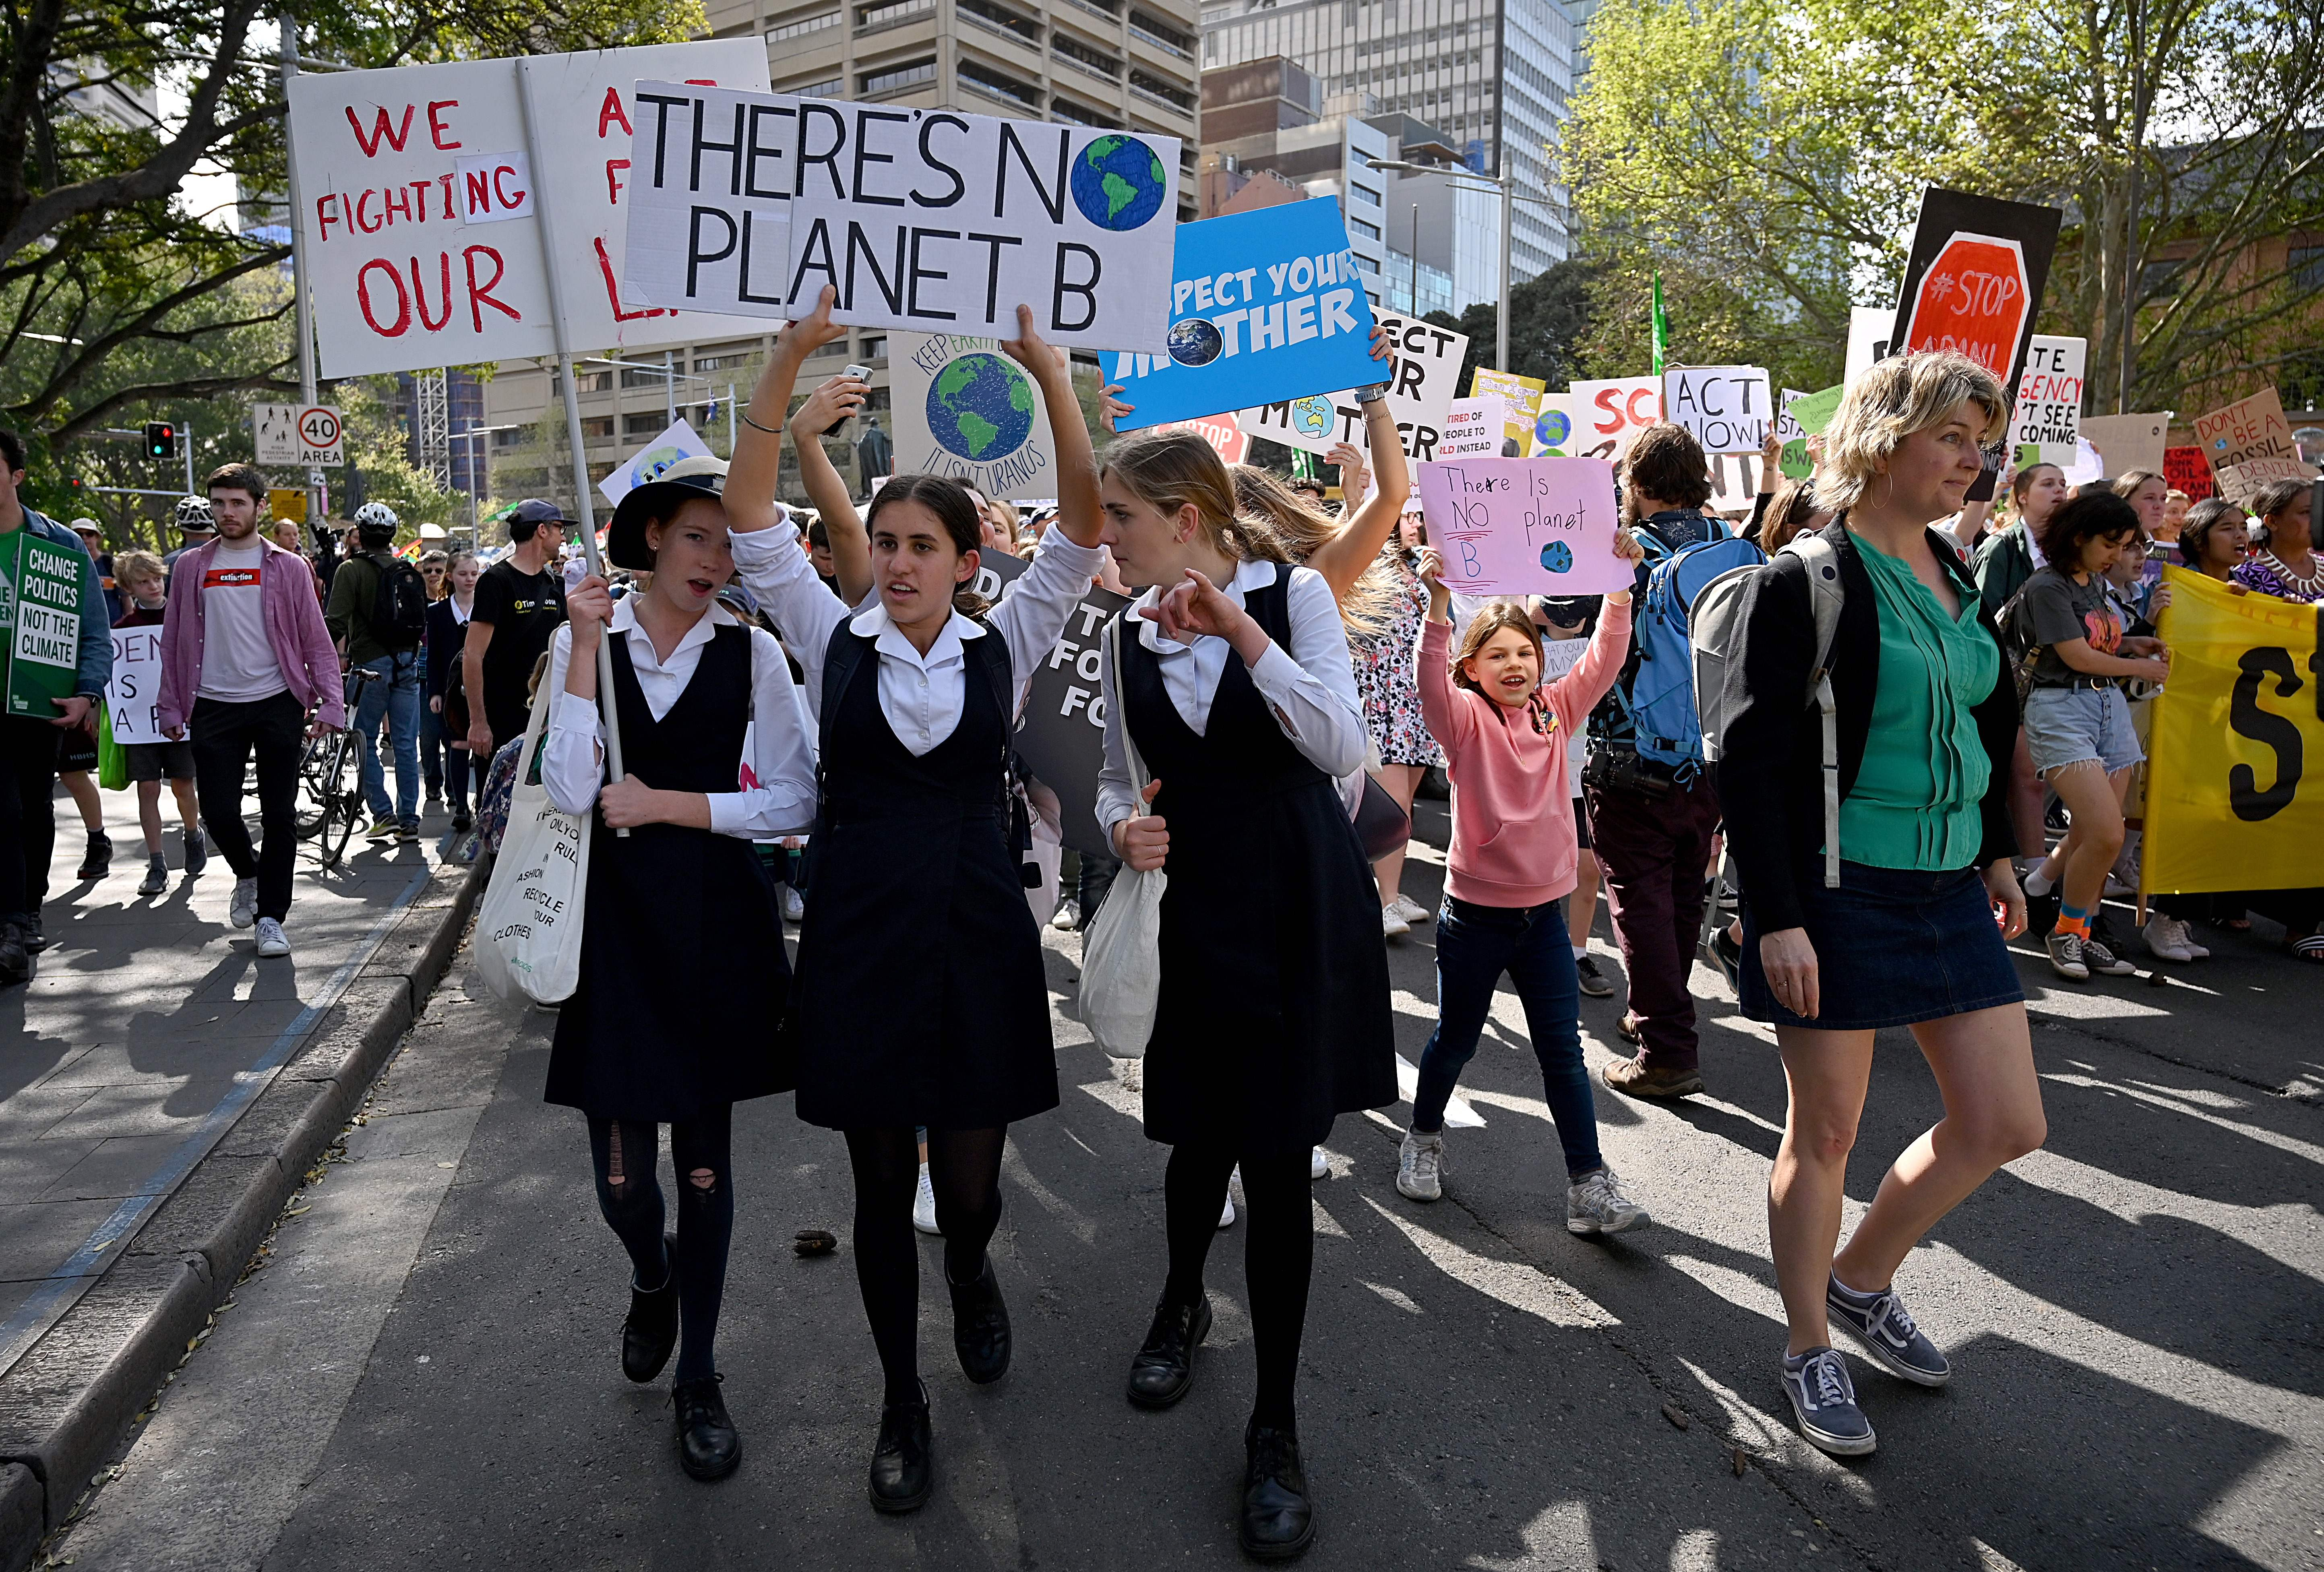 Students attend a protest march as part of the world's largest climate strike in Sydney on September 20, 2019.